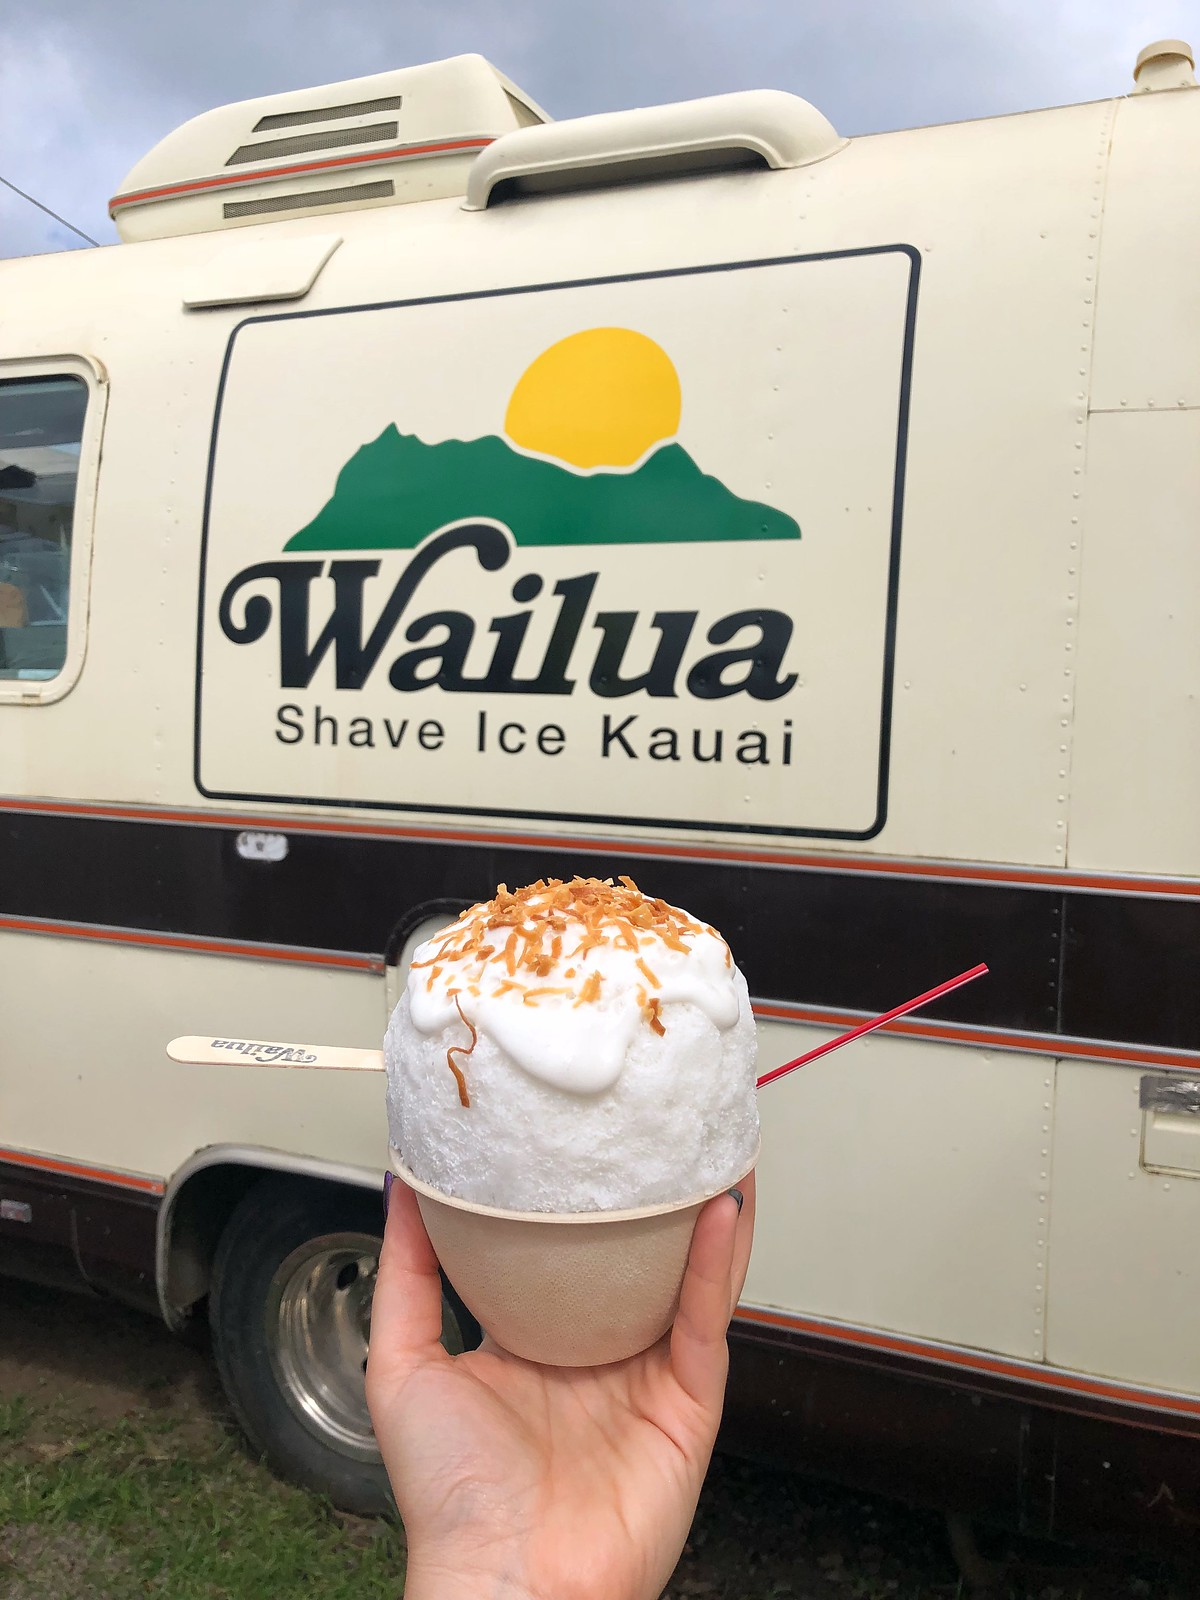 Wailua Shave Ice Kauai Where to Eat in Kauai Hawaii Things to do in Kapaa Kauai